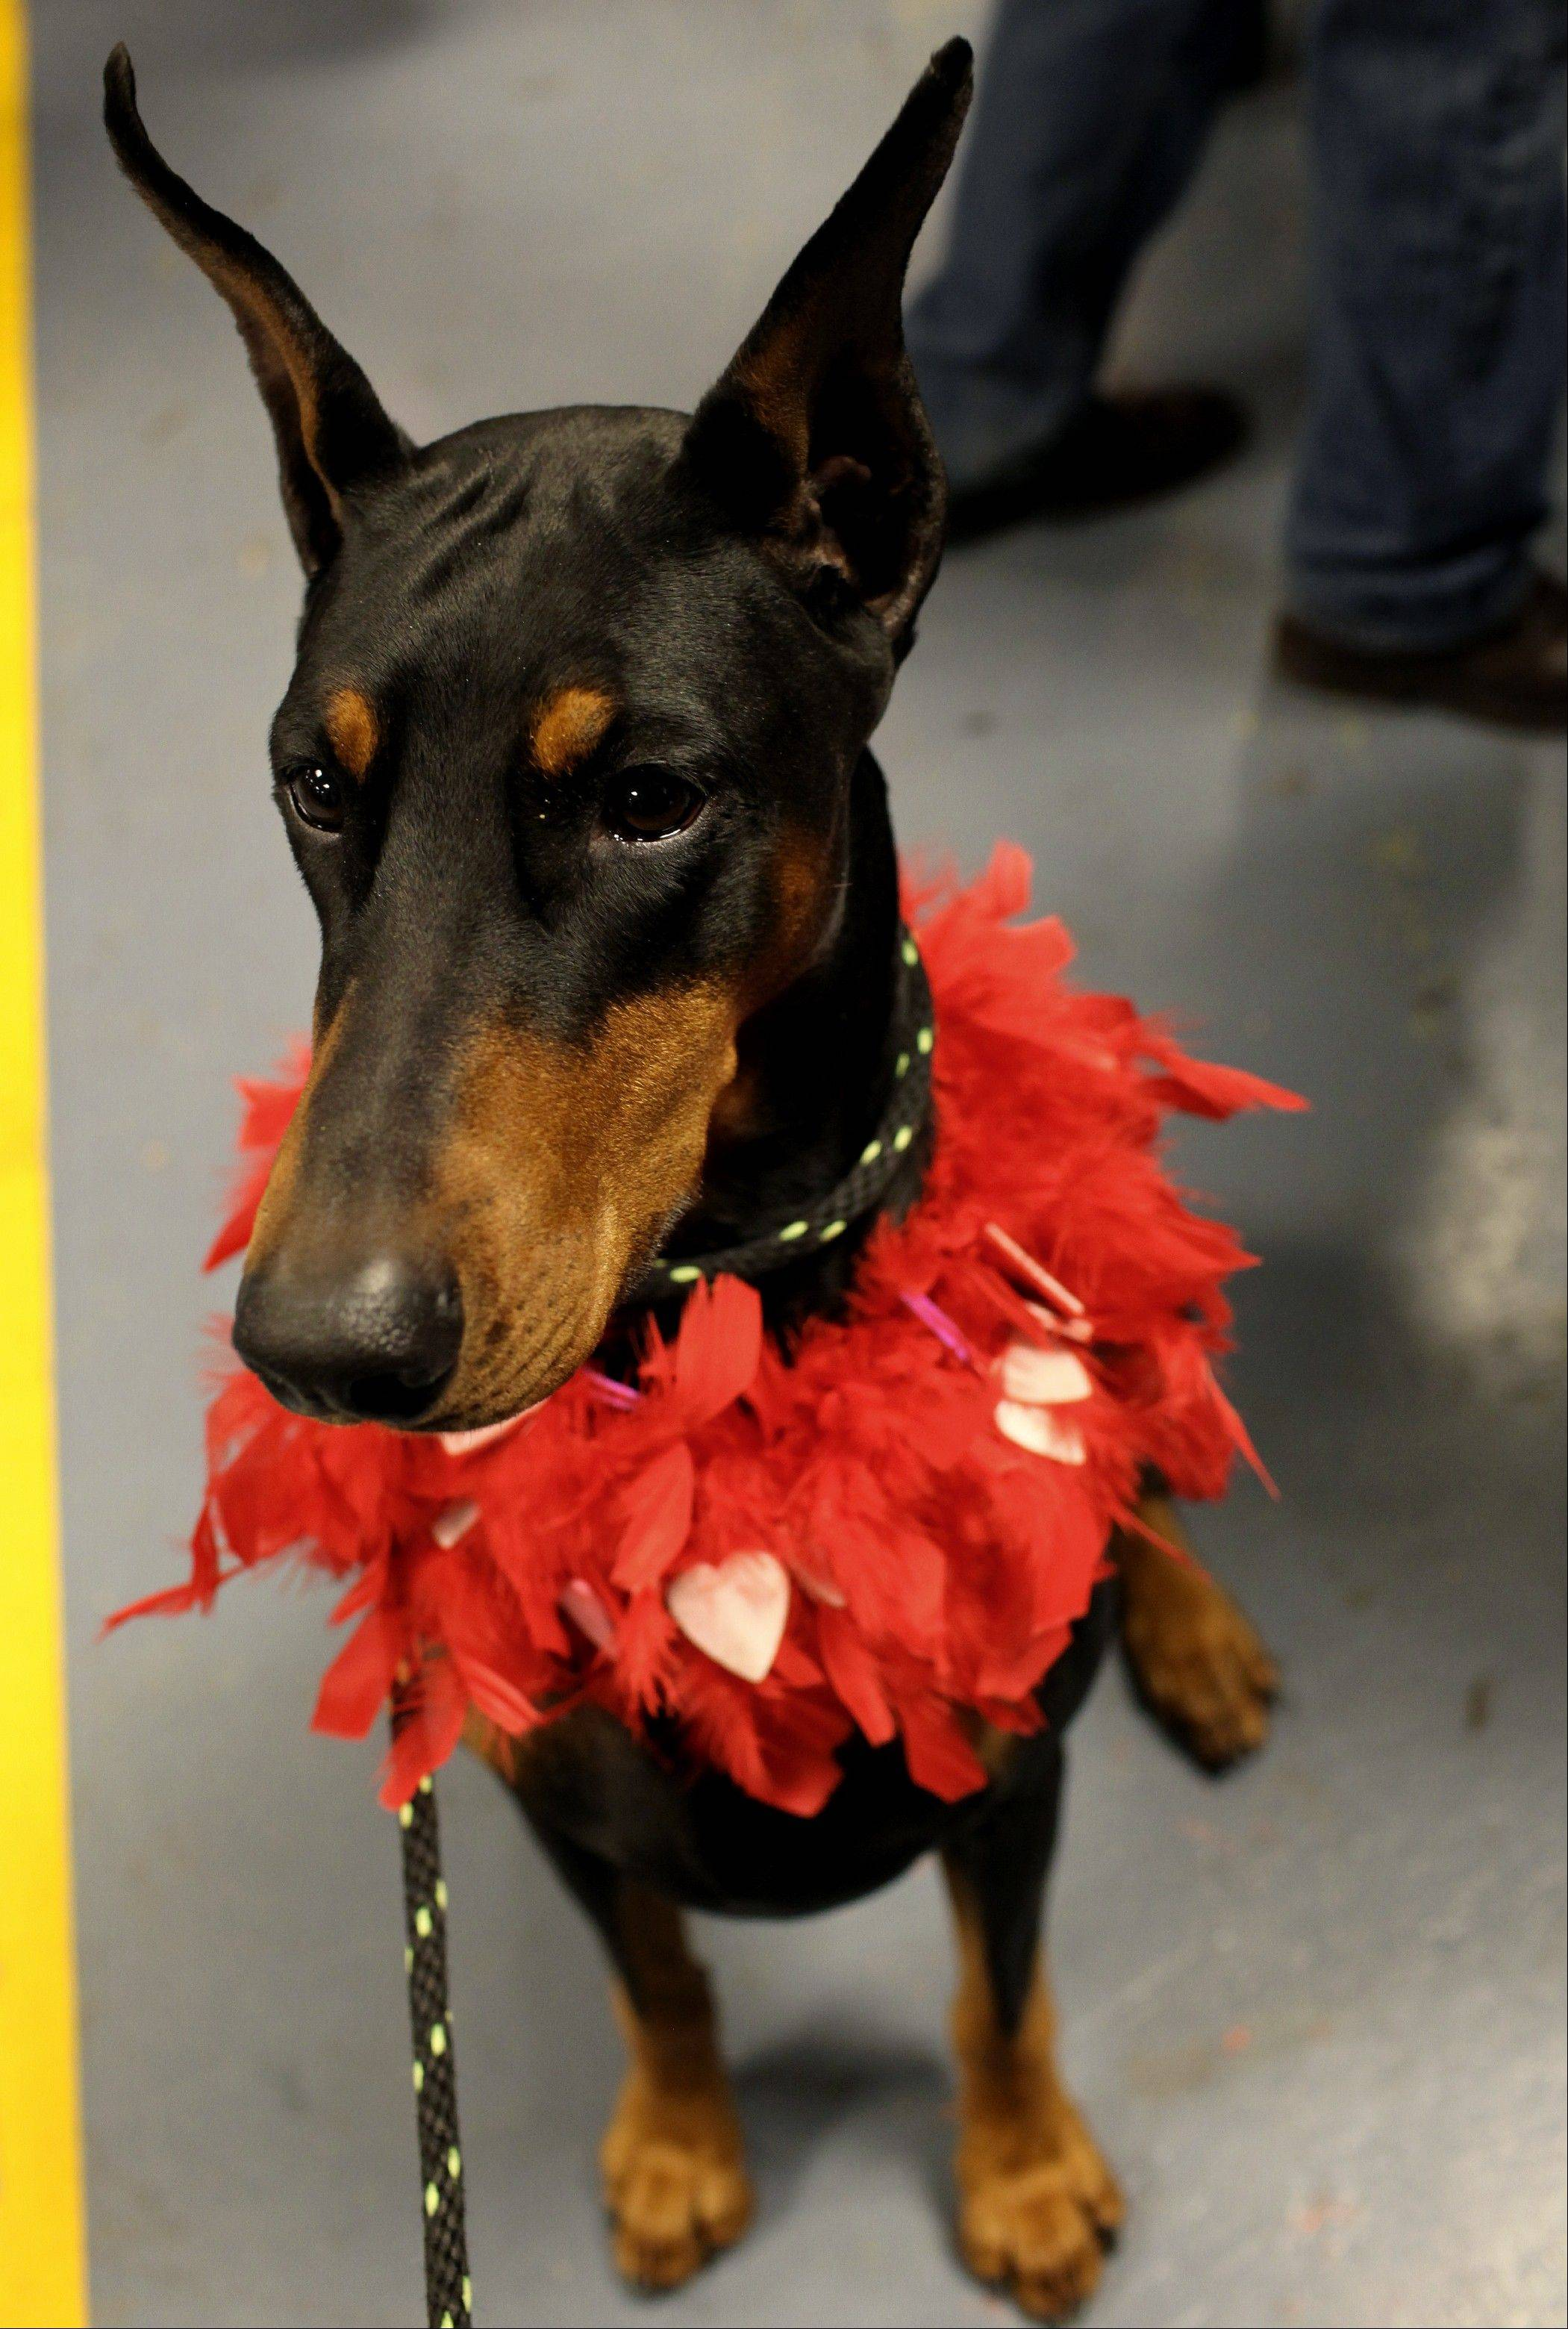 Mya, a doberman pinscher from Denton, Texas, wears Valentine's Day apparel in the backstage area.